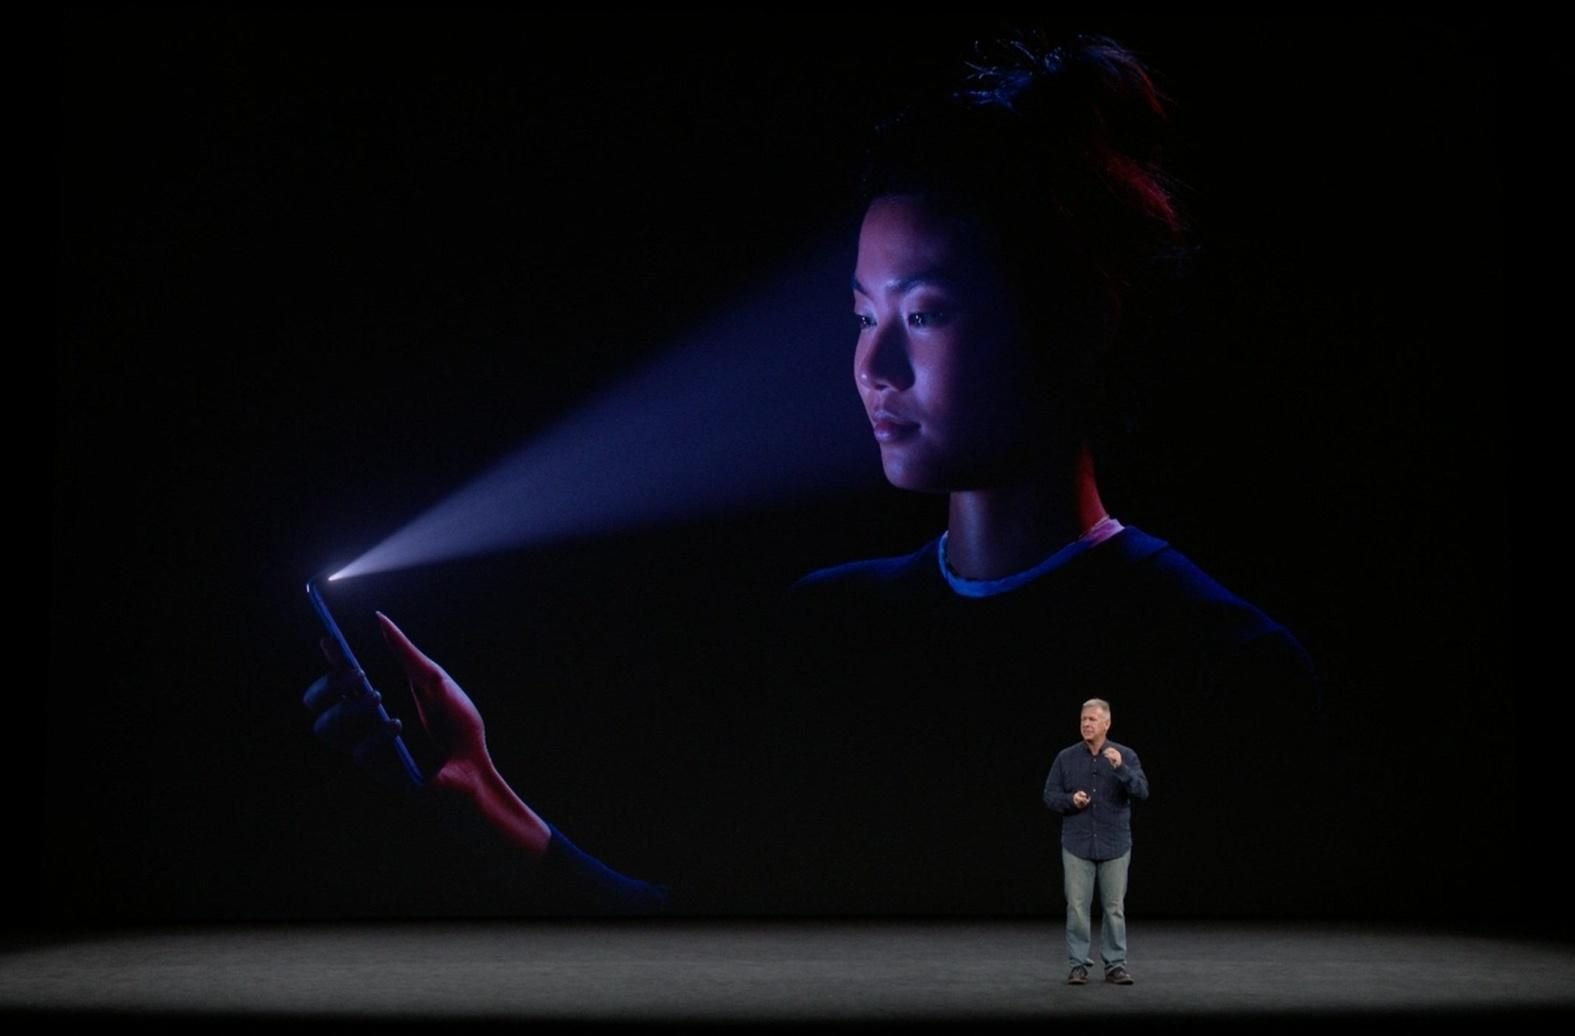 apple, apple face id, apple face id technology, face id